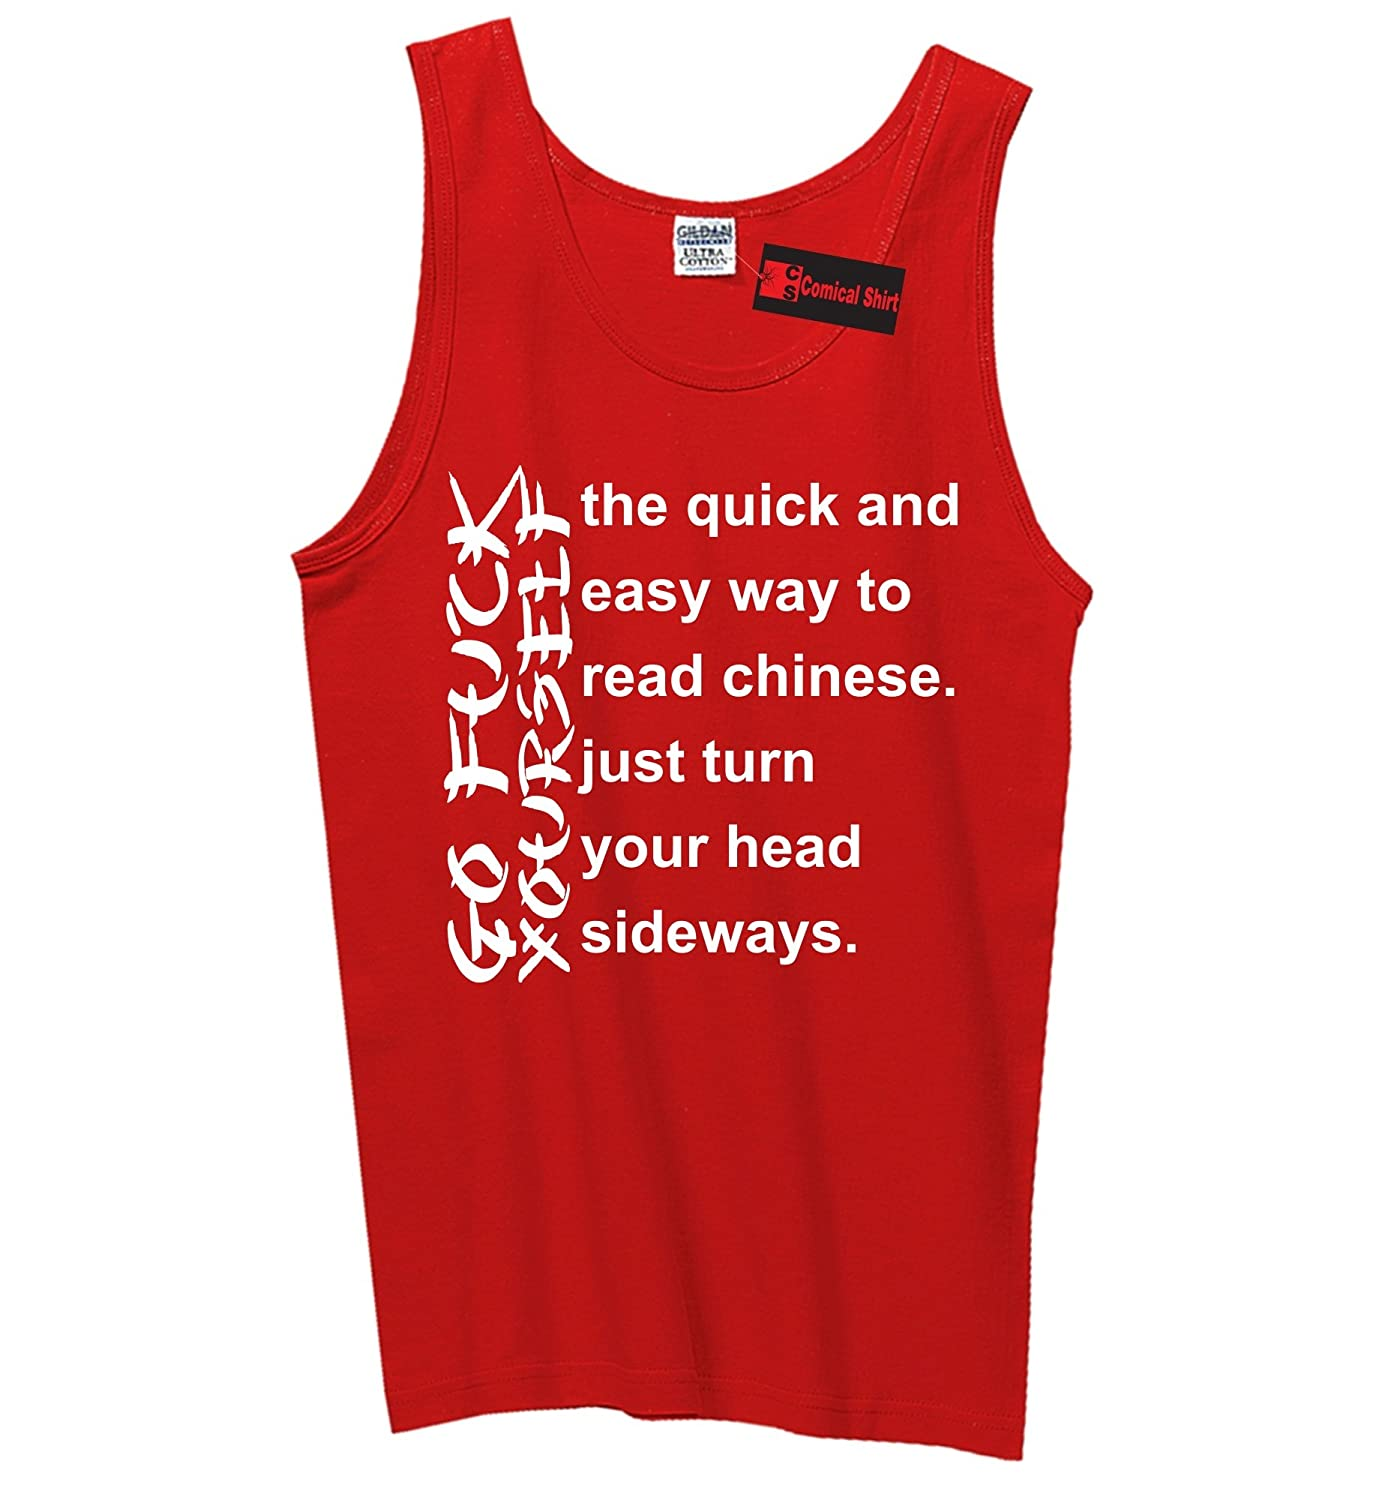 Comical Shirt Men's Go Fuck Yourself Chinese Letters Funny Adult Party Tank Top